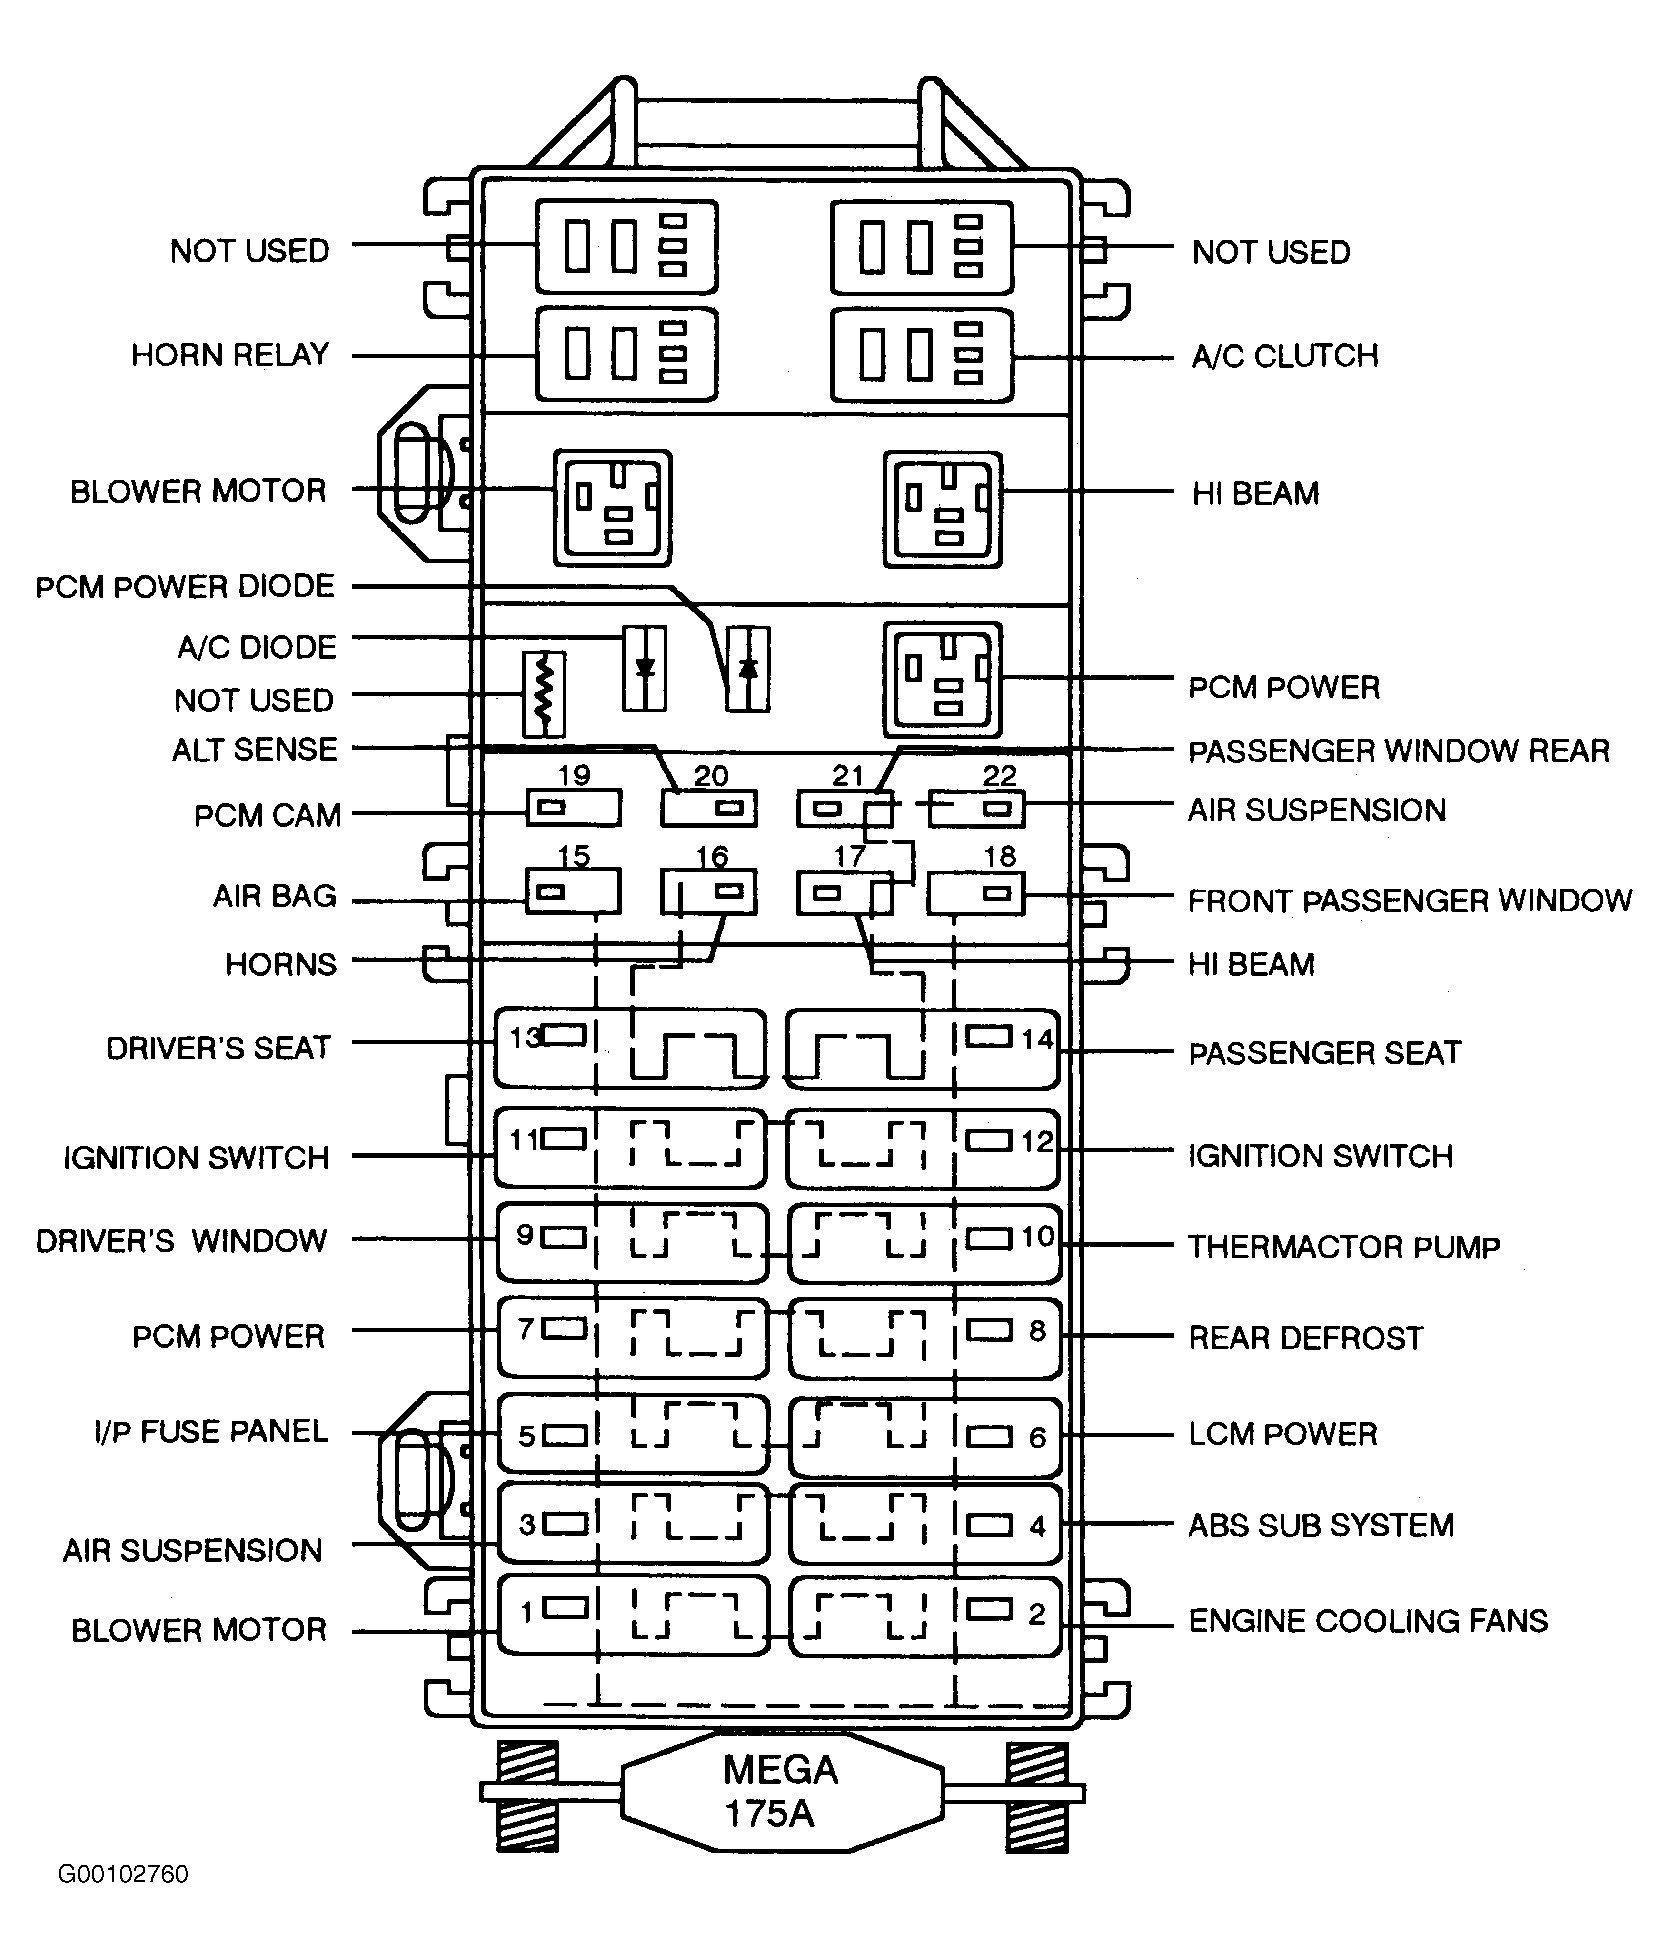 hight resolution of fuse box diagram lincoln navigator 2006 wiring diagram megalincoln fuse box diagram wiring diagram paper 1998